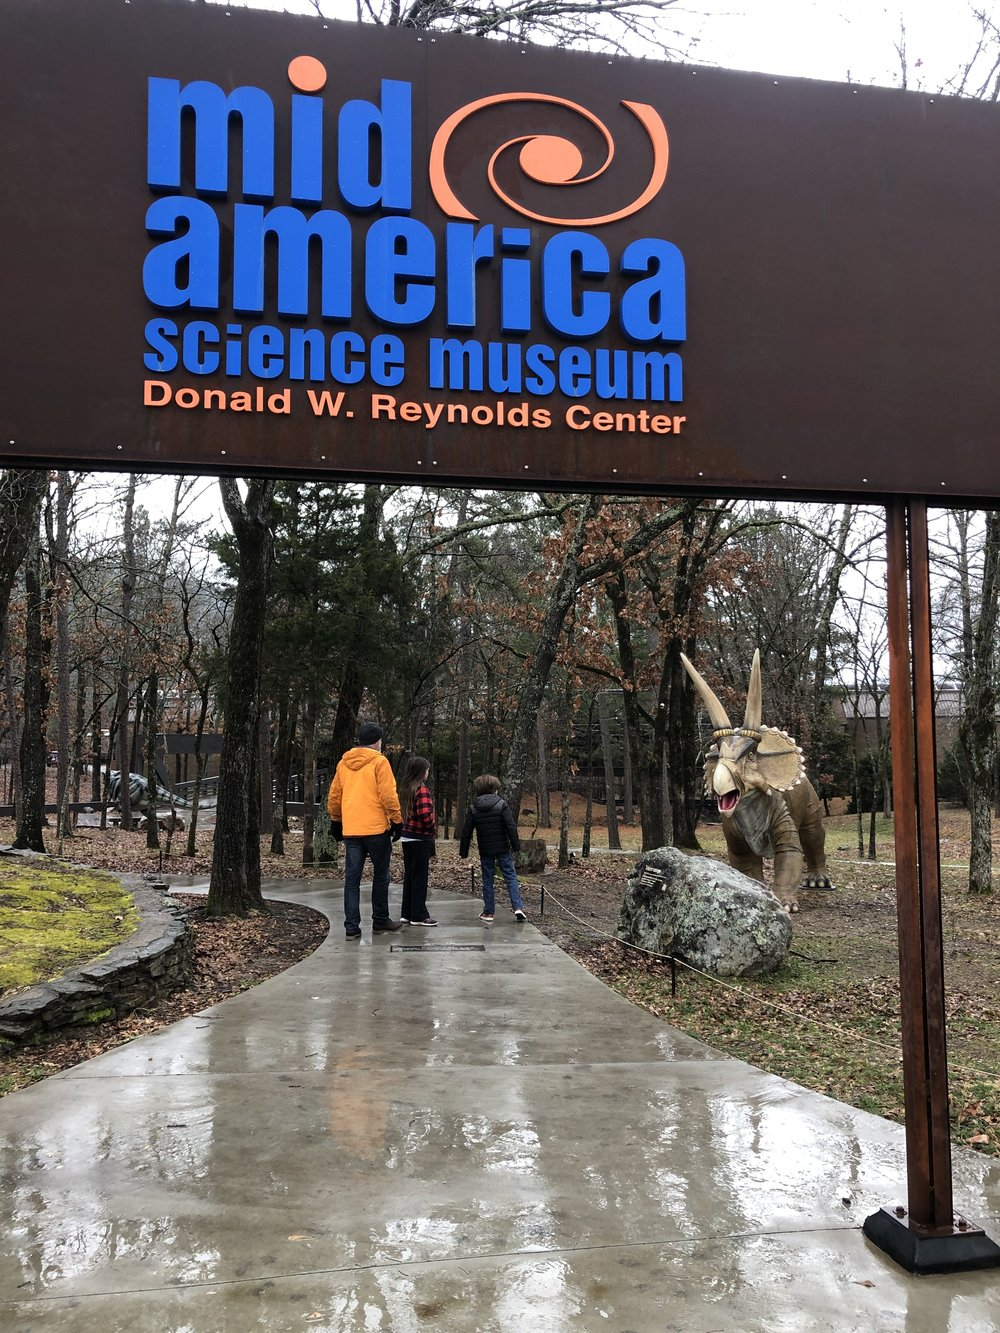 Mid-America Science Museum, Things to do in Hot Springs, Arkansas via Weekend Trips From Nashville